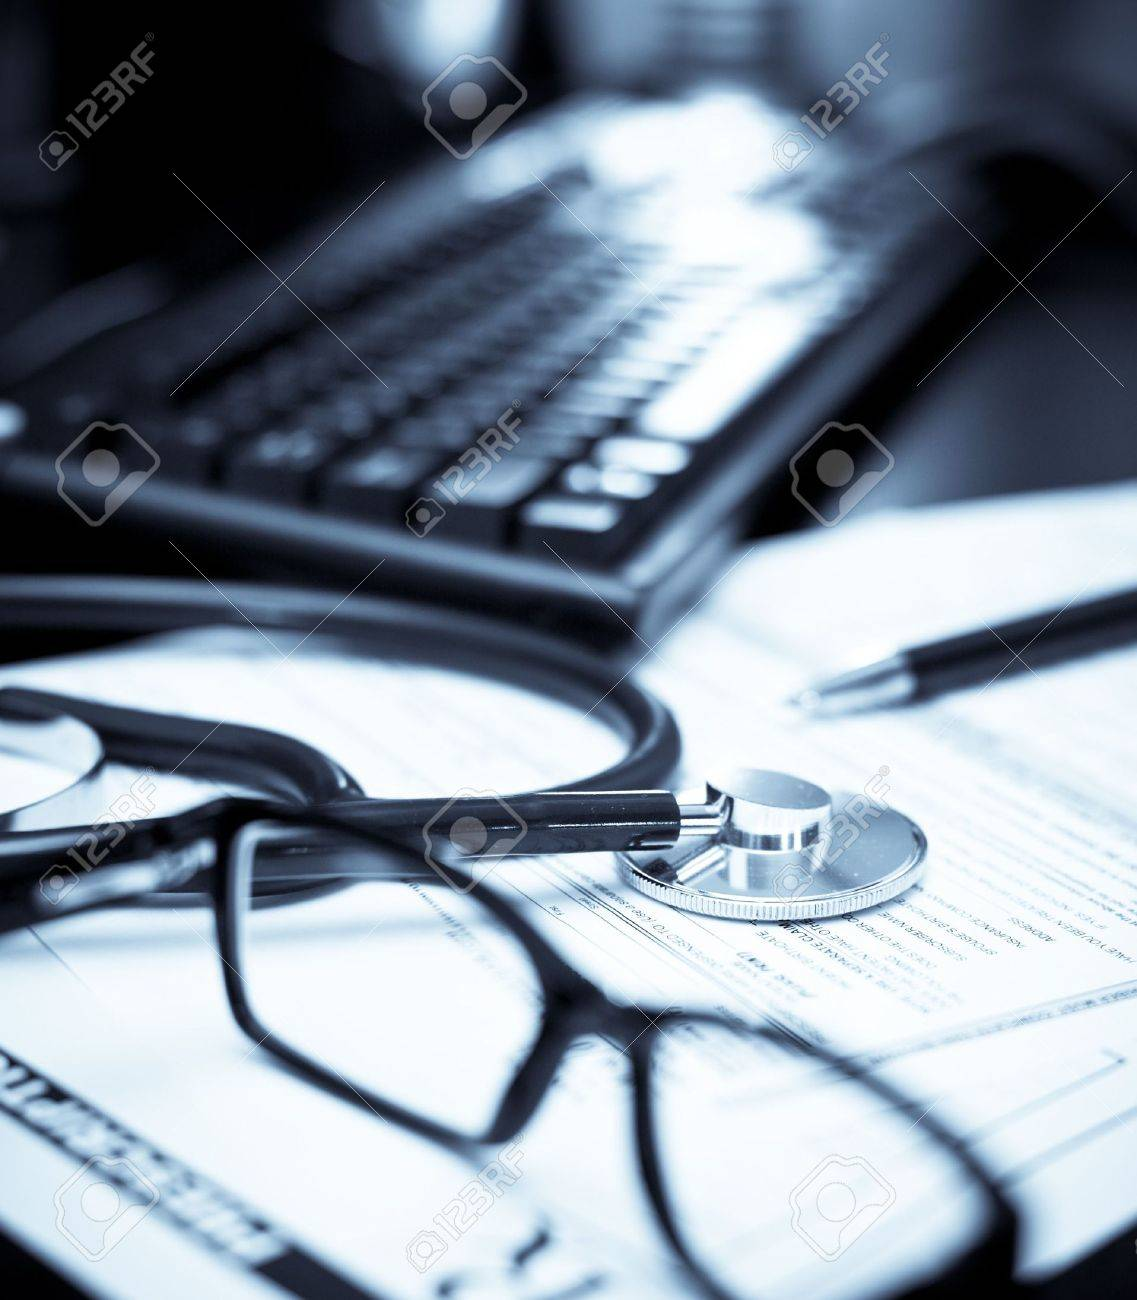 Stethoscope on a prescription form with glasses pen and keyboard, very shallow DOF Stock Photo - 5520953